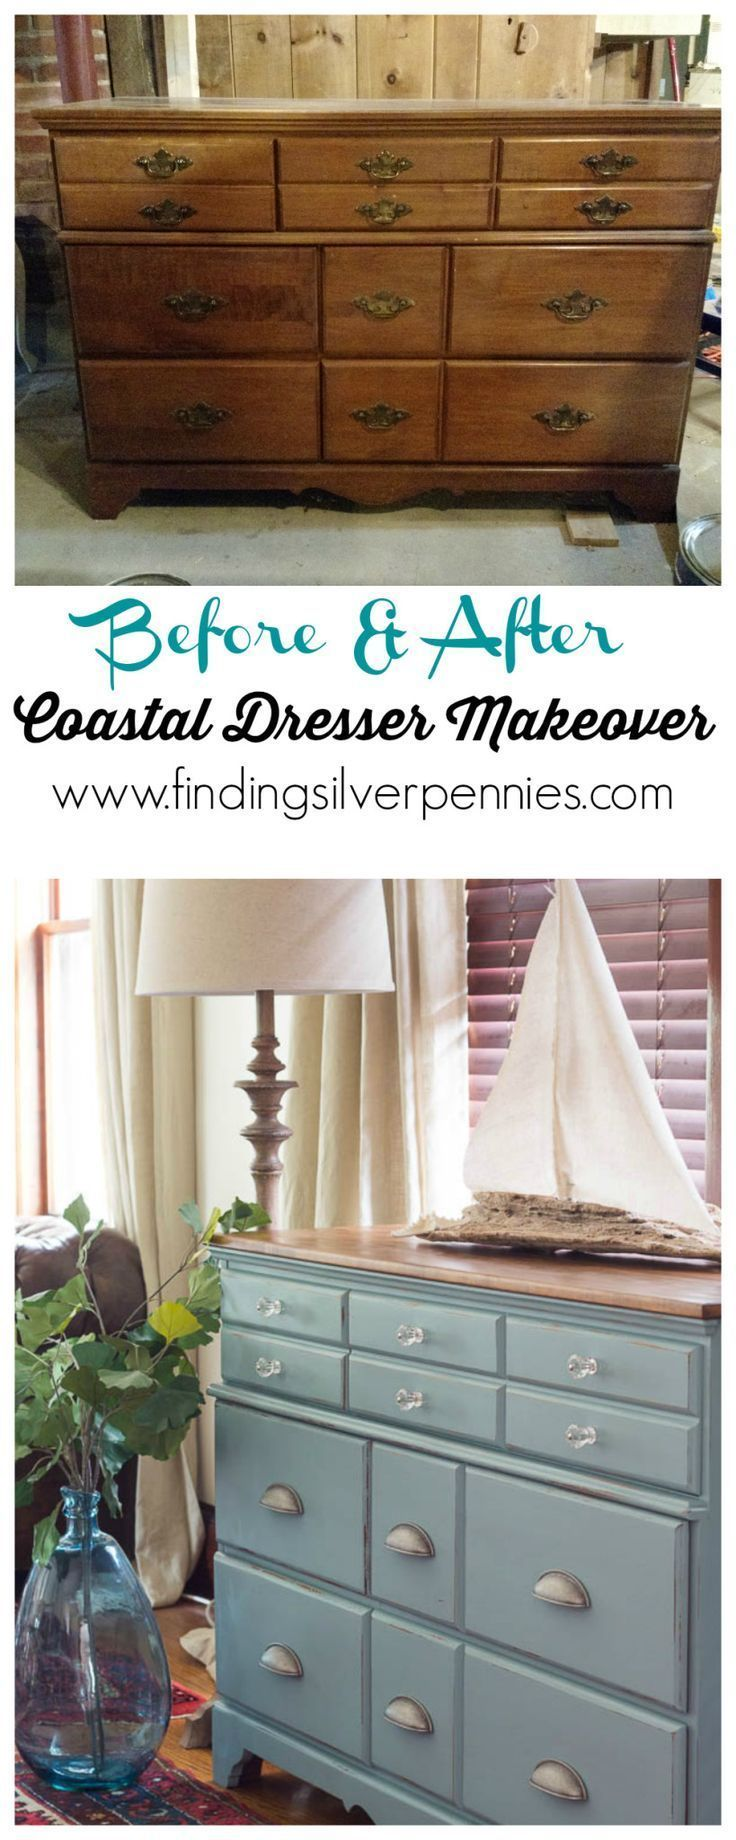 repurposed furniture before and after | 31 Days: Day 8 ... |Repurposed Furniture Before And After